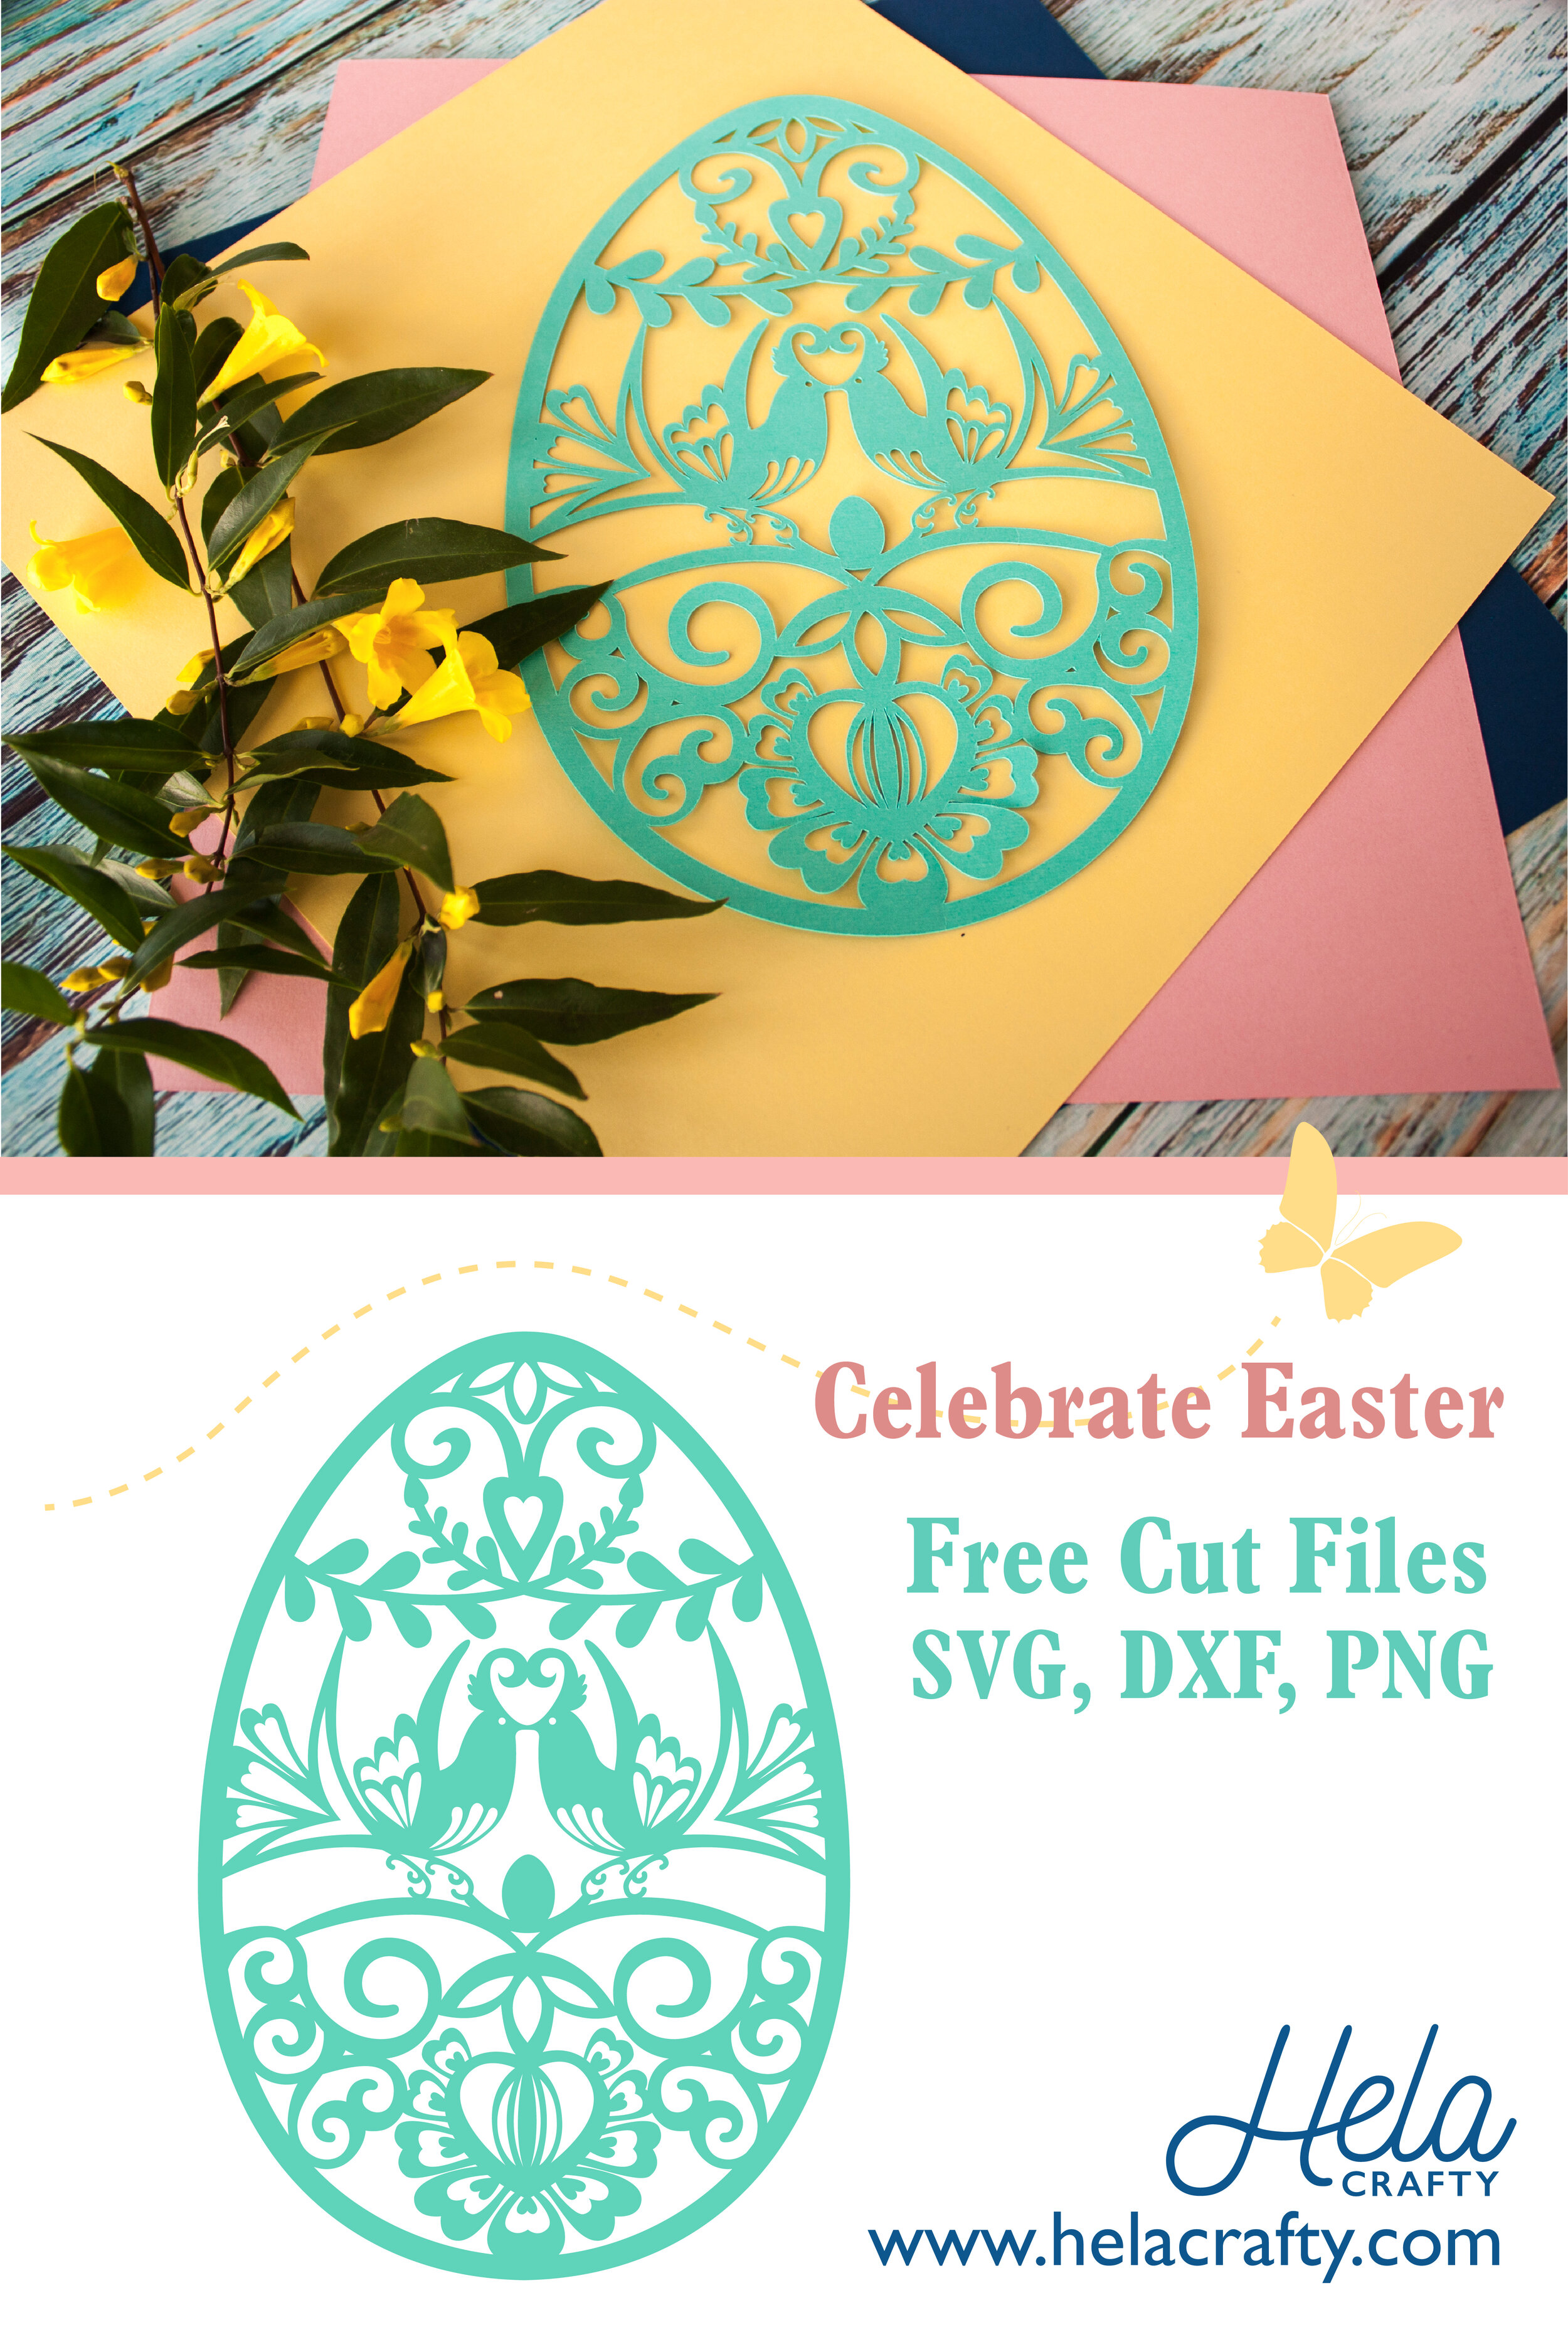 Easter Decoration Love Birds Free Svg Dxf Png Download For Cricut Silhouette Cameo Glowforge Hela Crafty